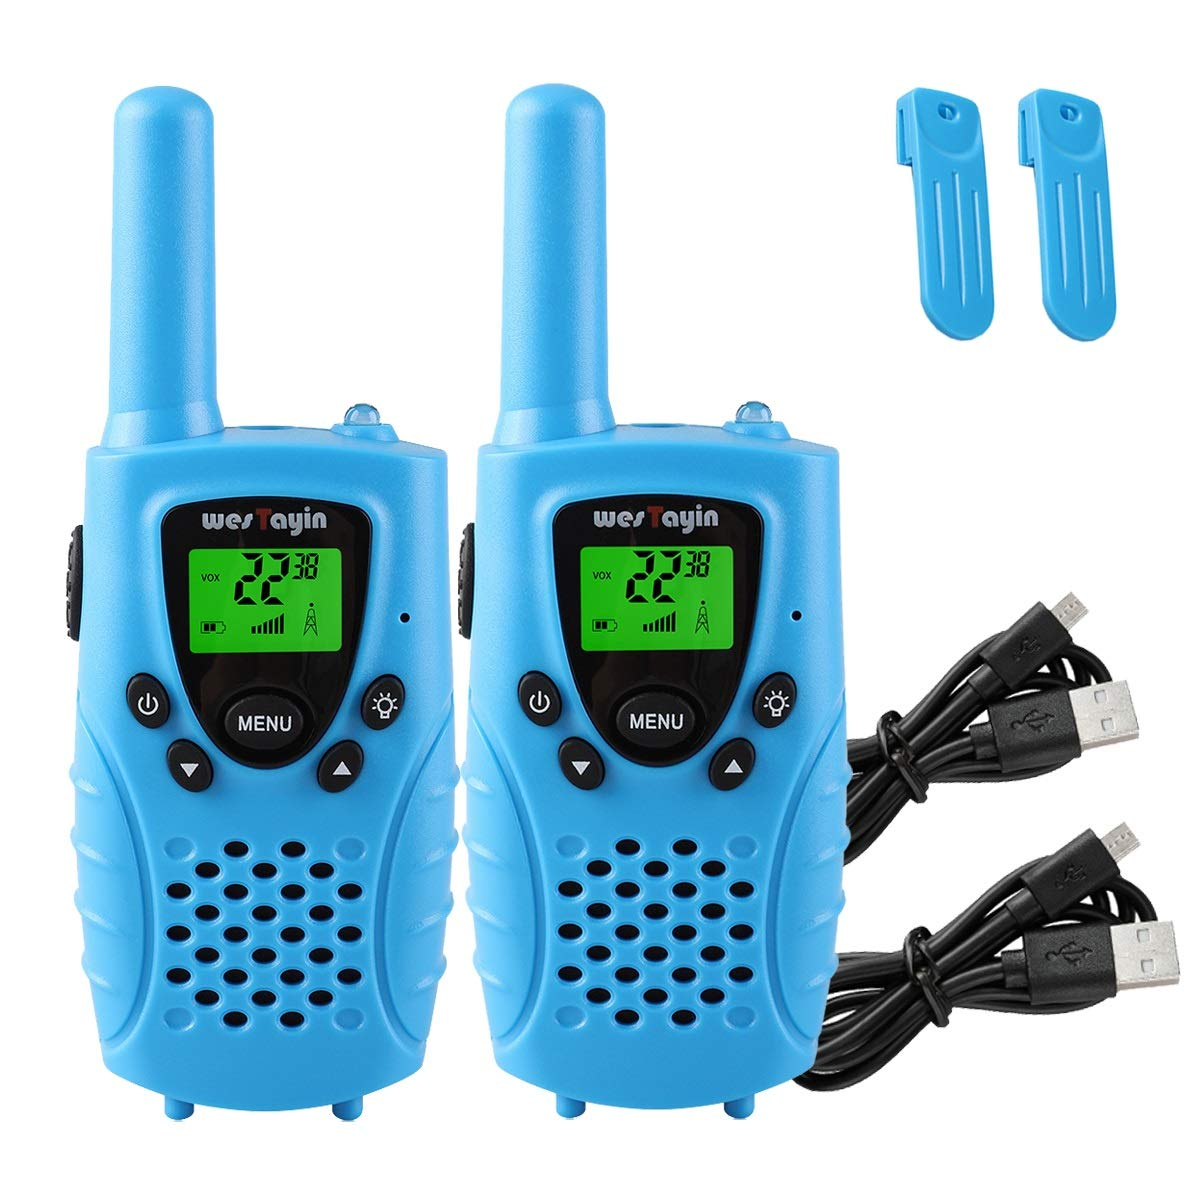 WES TAYIN Kids Walkie Talkies Rechargable, 4 Miles Long Range Walkie Talkies Toy with Durable Rugged Sports Design and Flashlight, Two Way Radios Toy 2 Pack, Batteries not Included(Blue)